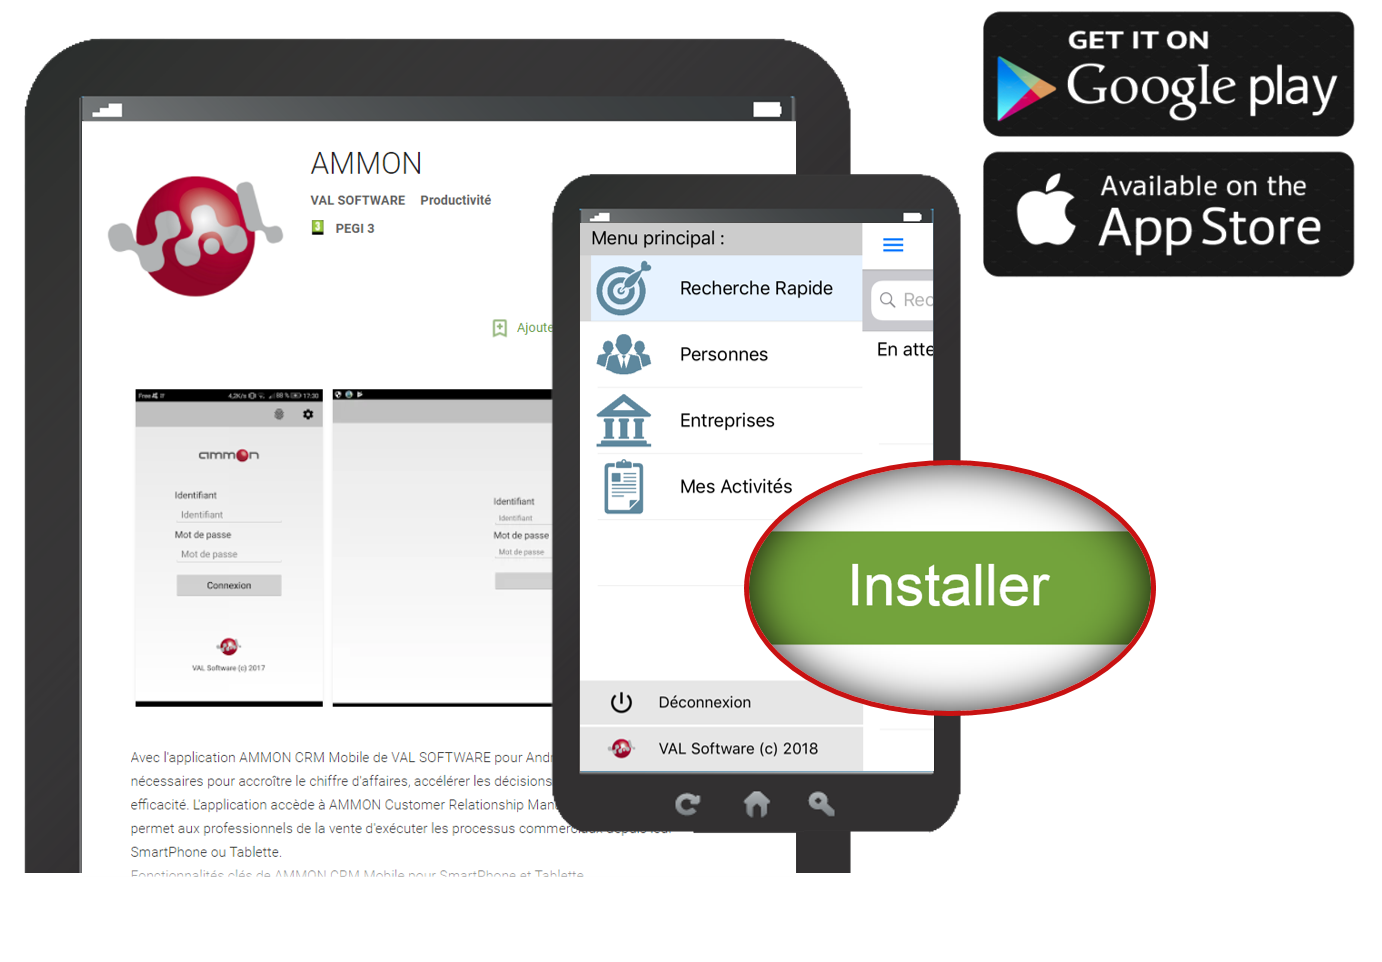 APPS CRM